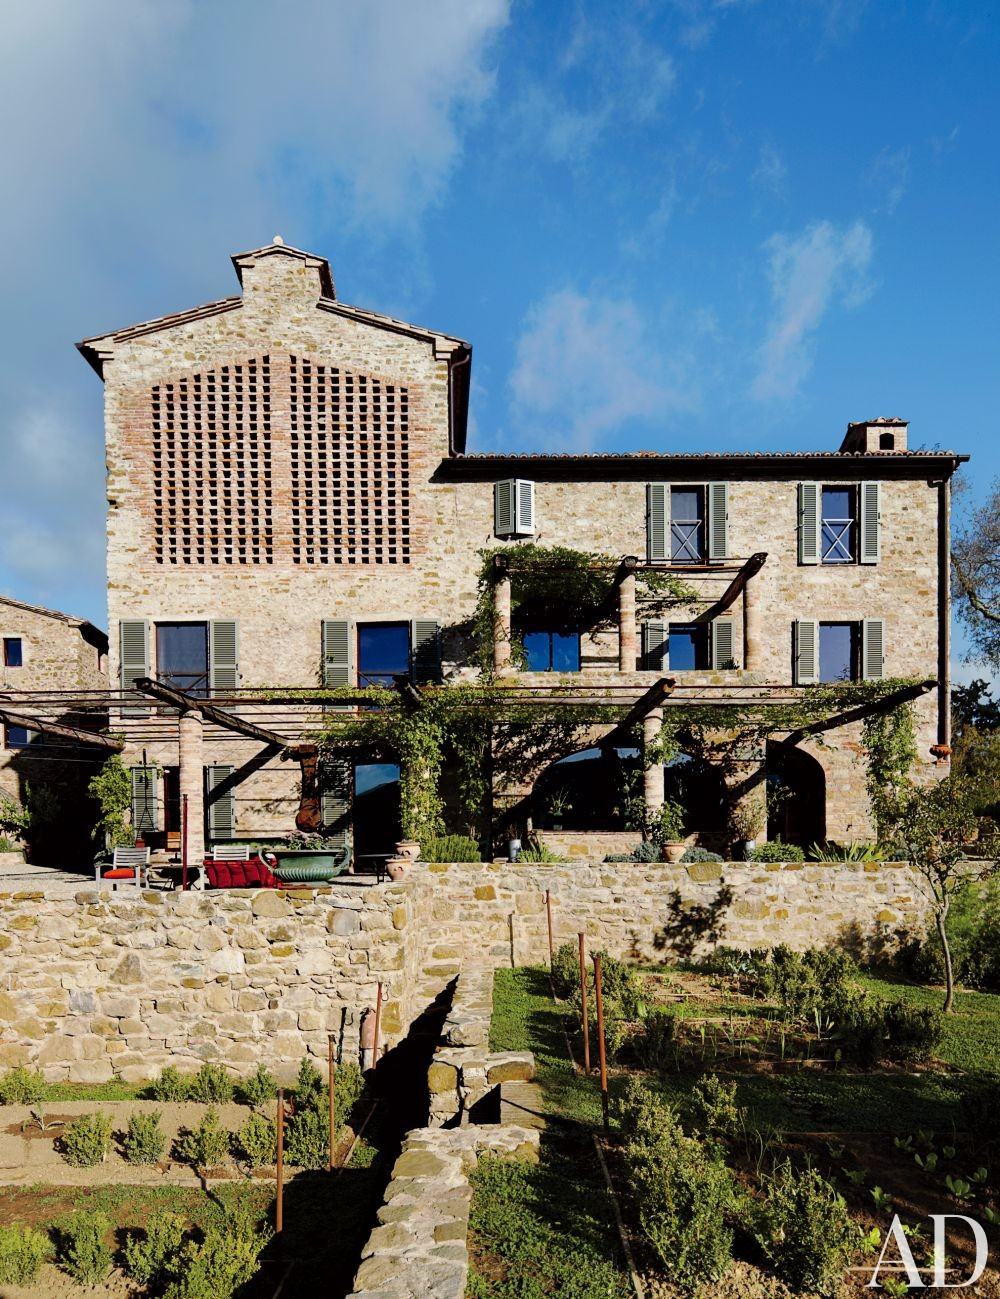 Rustic Exterior and Benedikt Bolza in Umbria, Italy